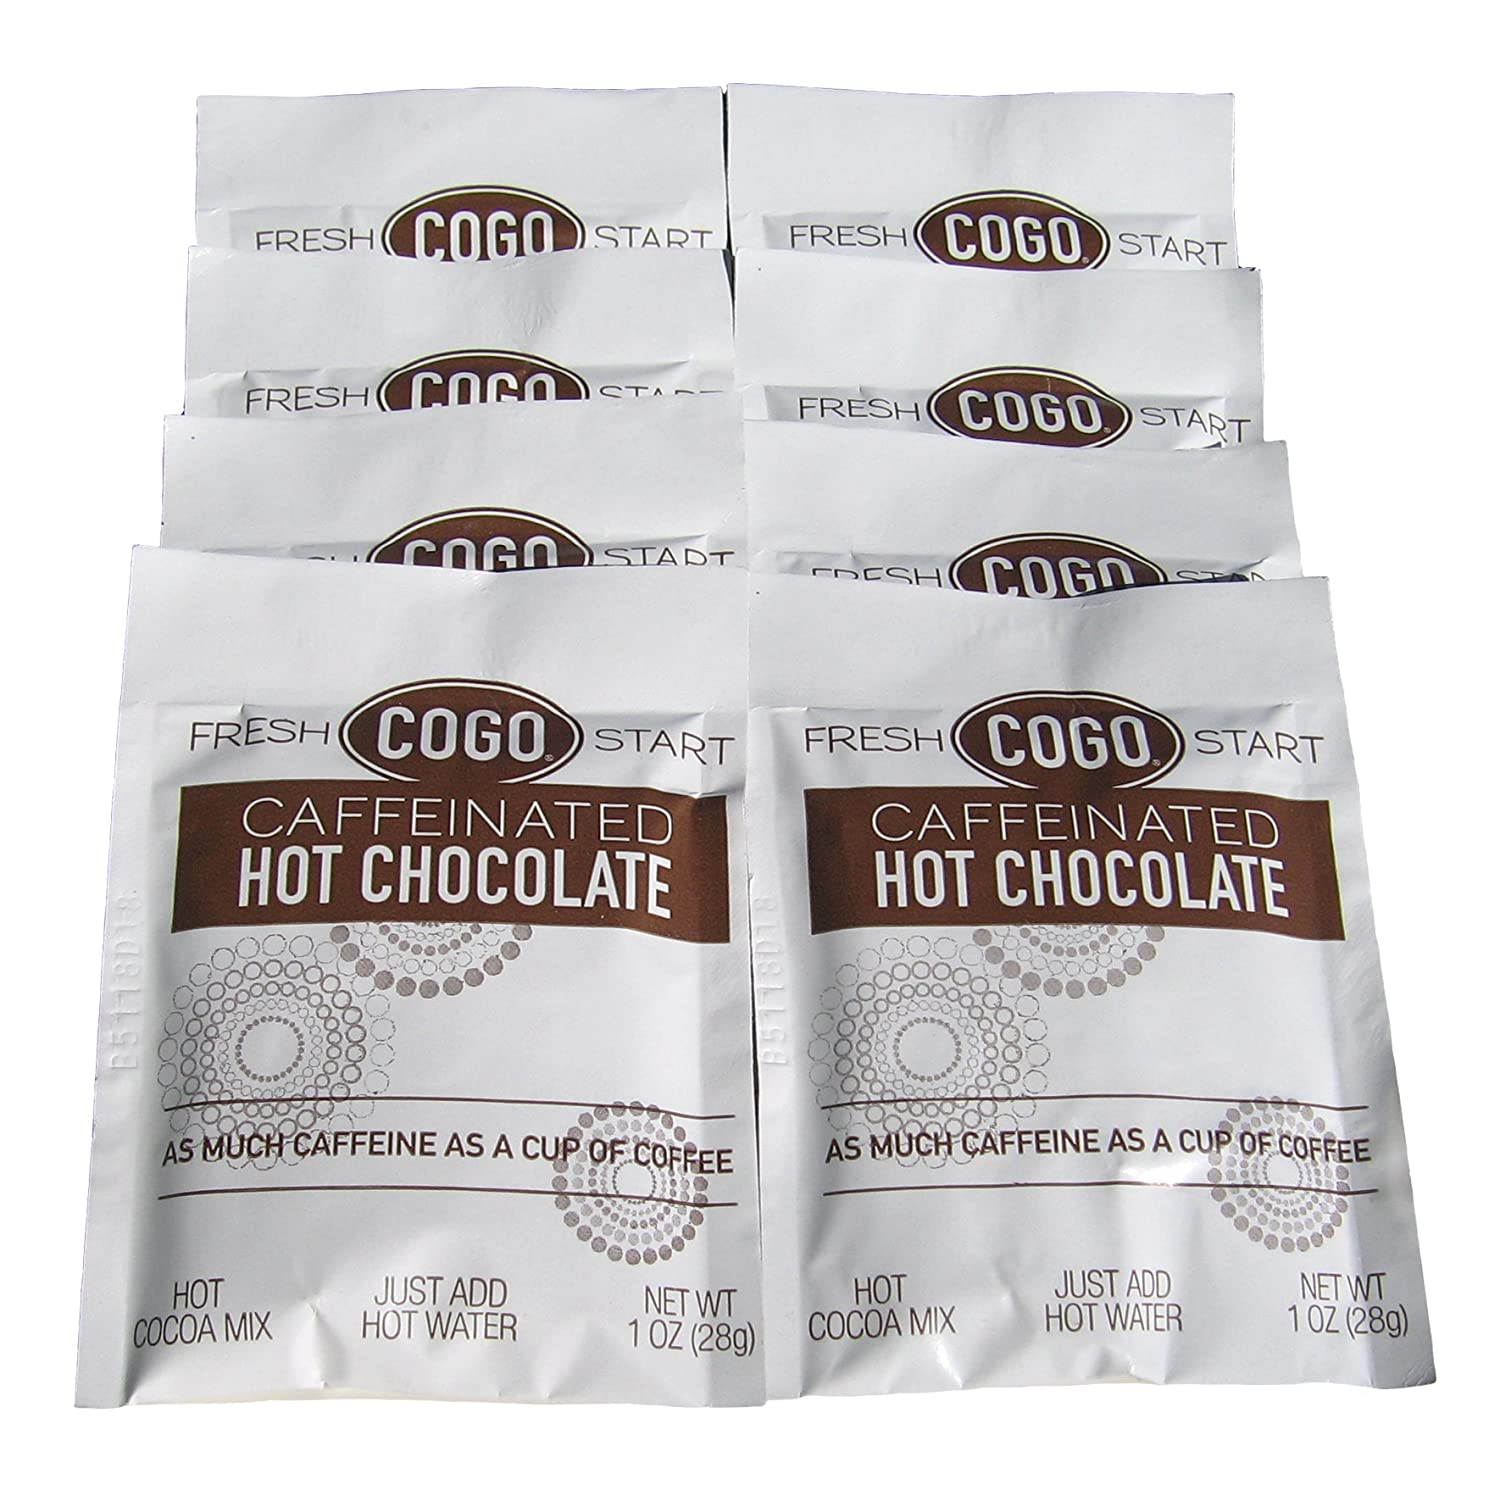 Amazon.com : COGO Caffeinated Hot Chocolate 8-pack TRIAL SIZE, 1oz ...